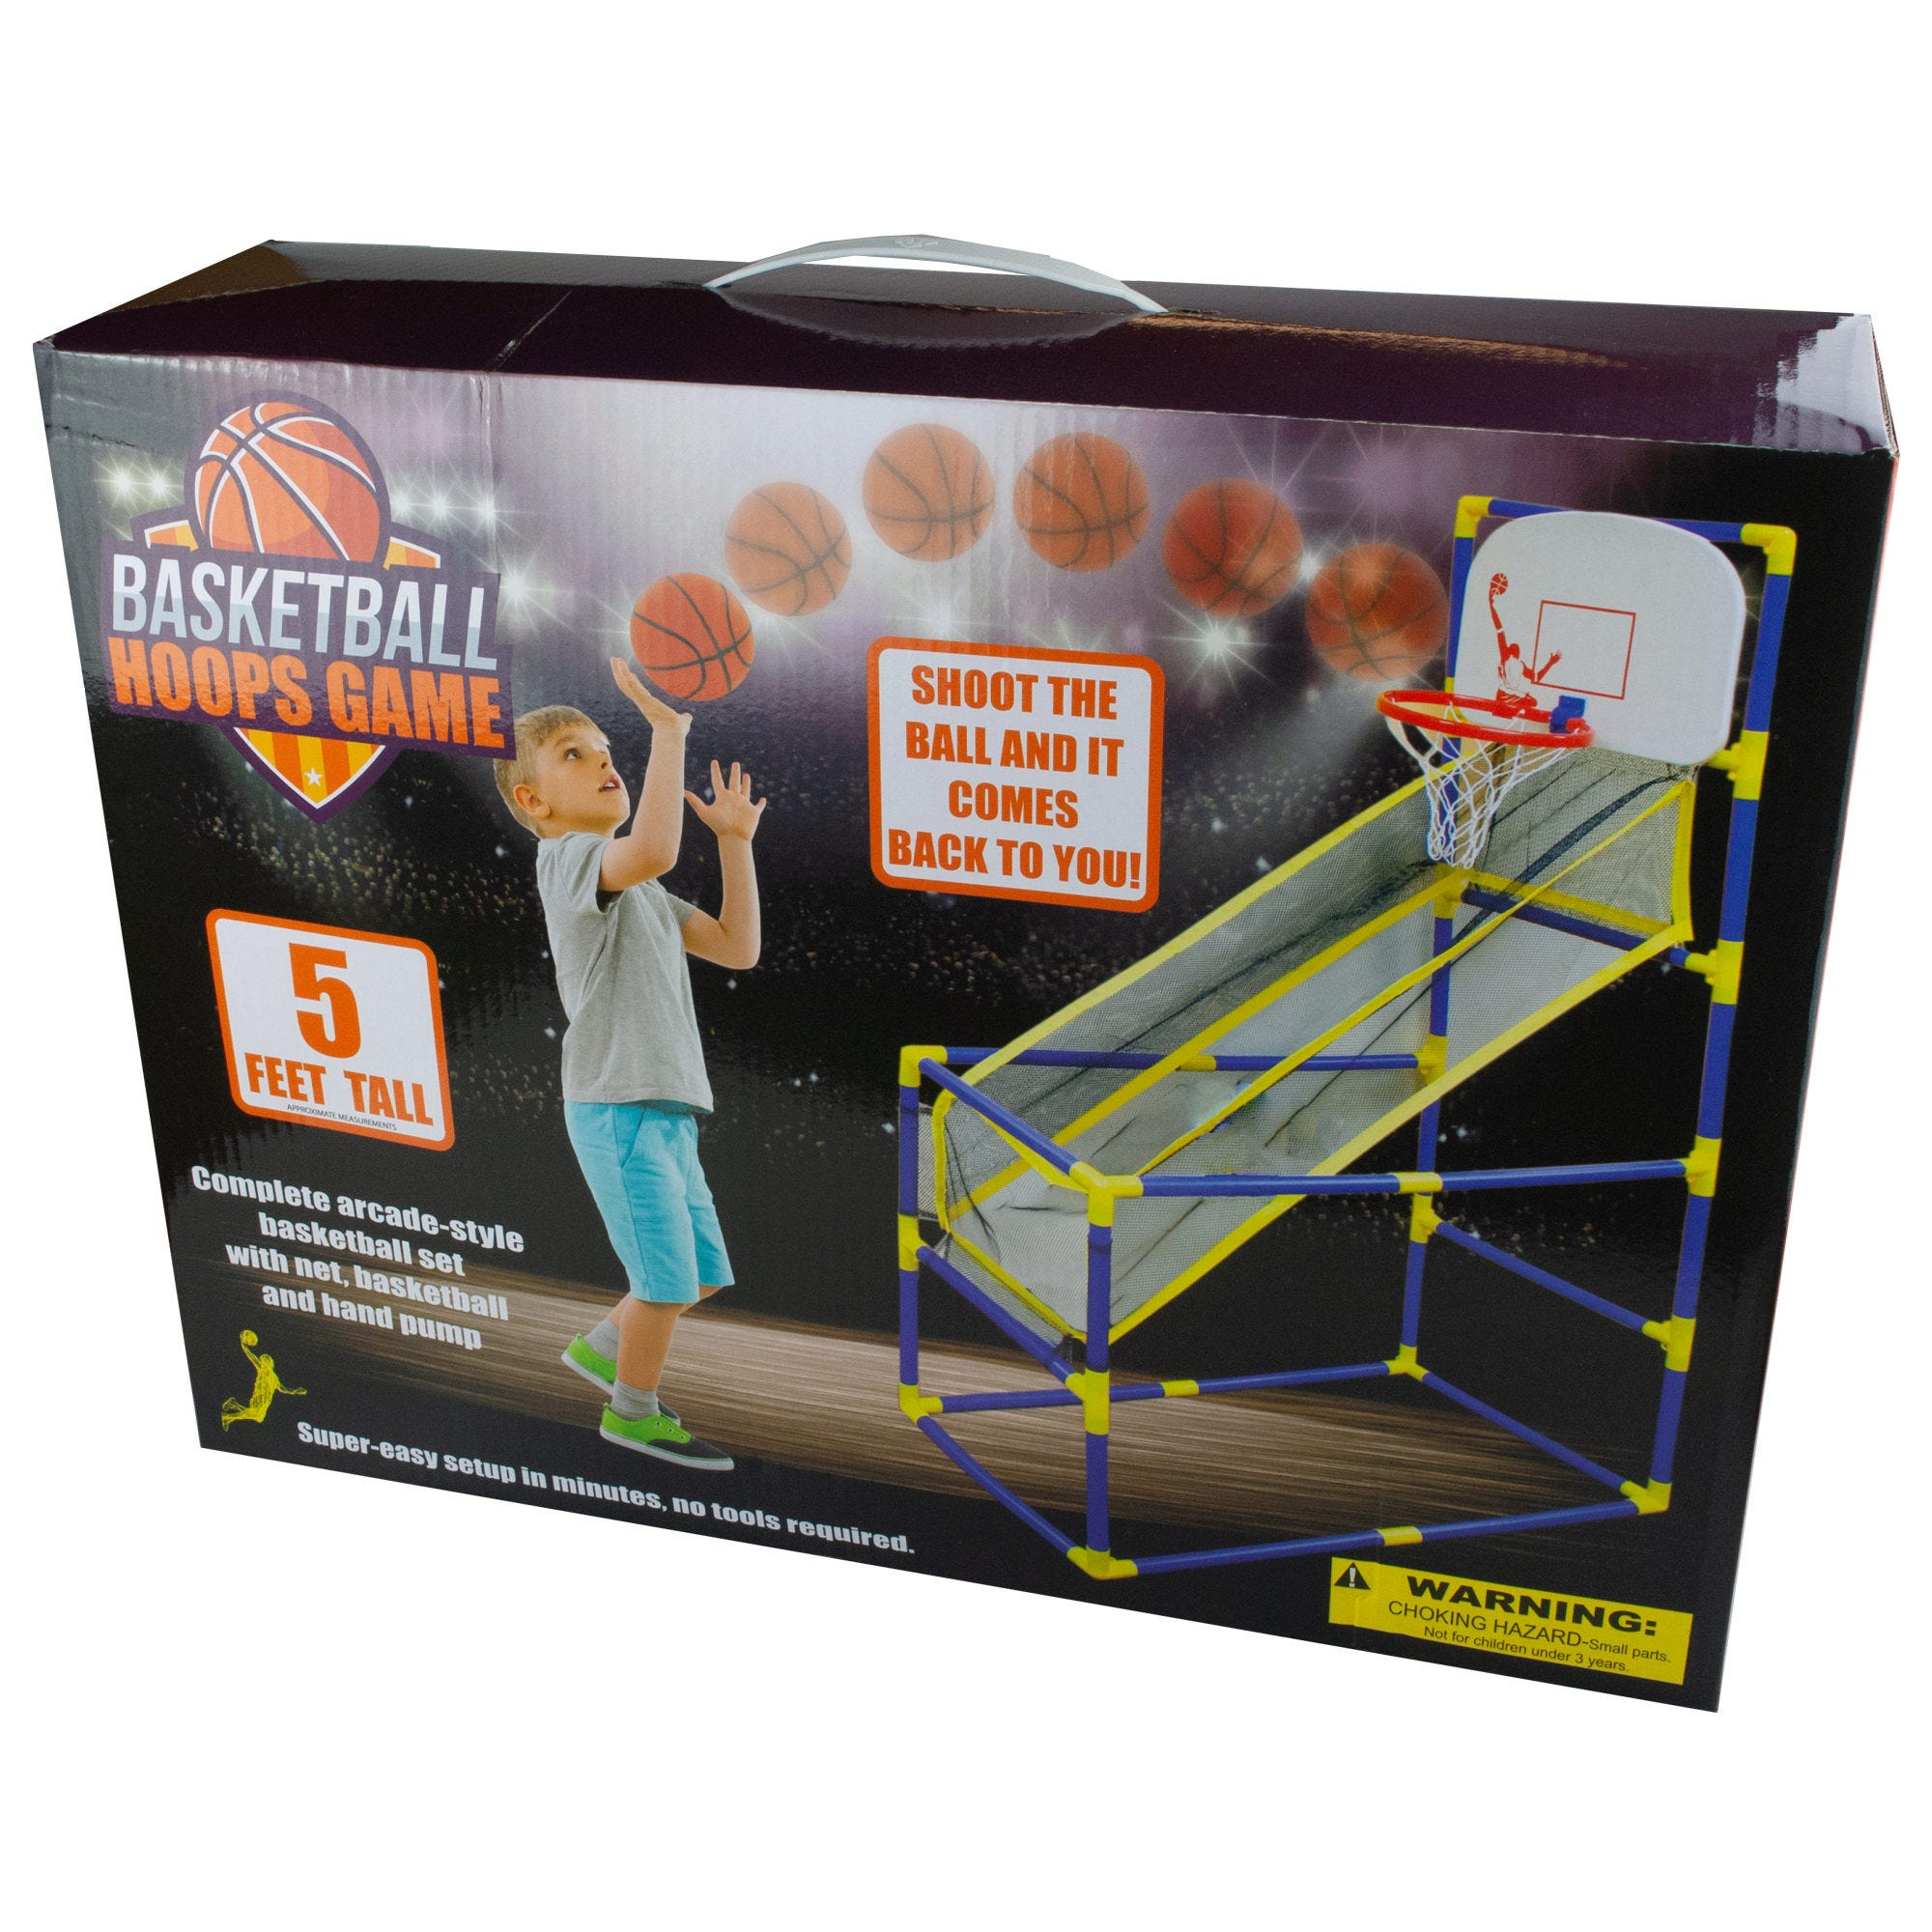 Arcade-Style BASKETBALL Hoops Game- Qty 2